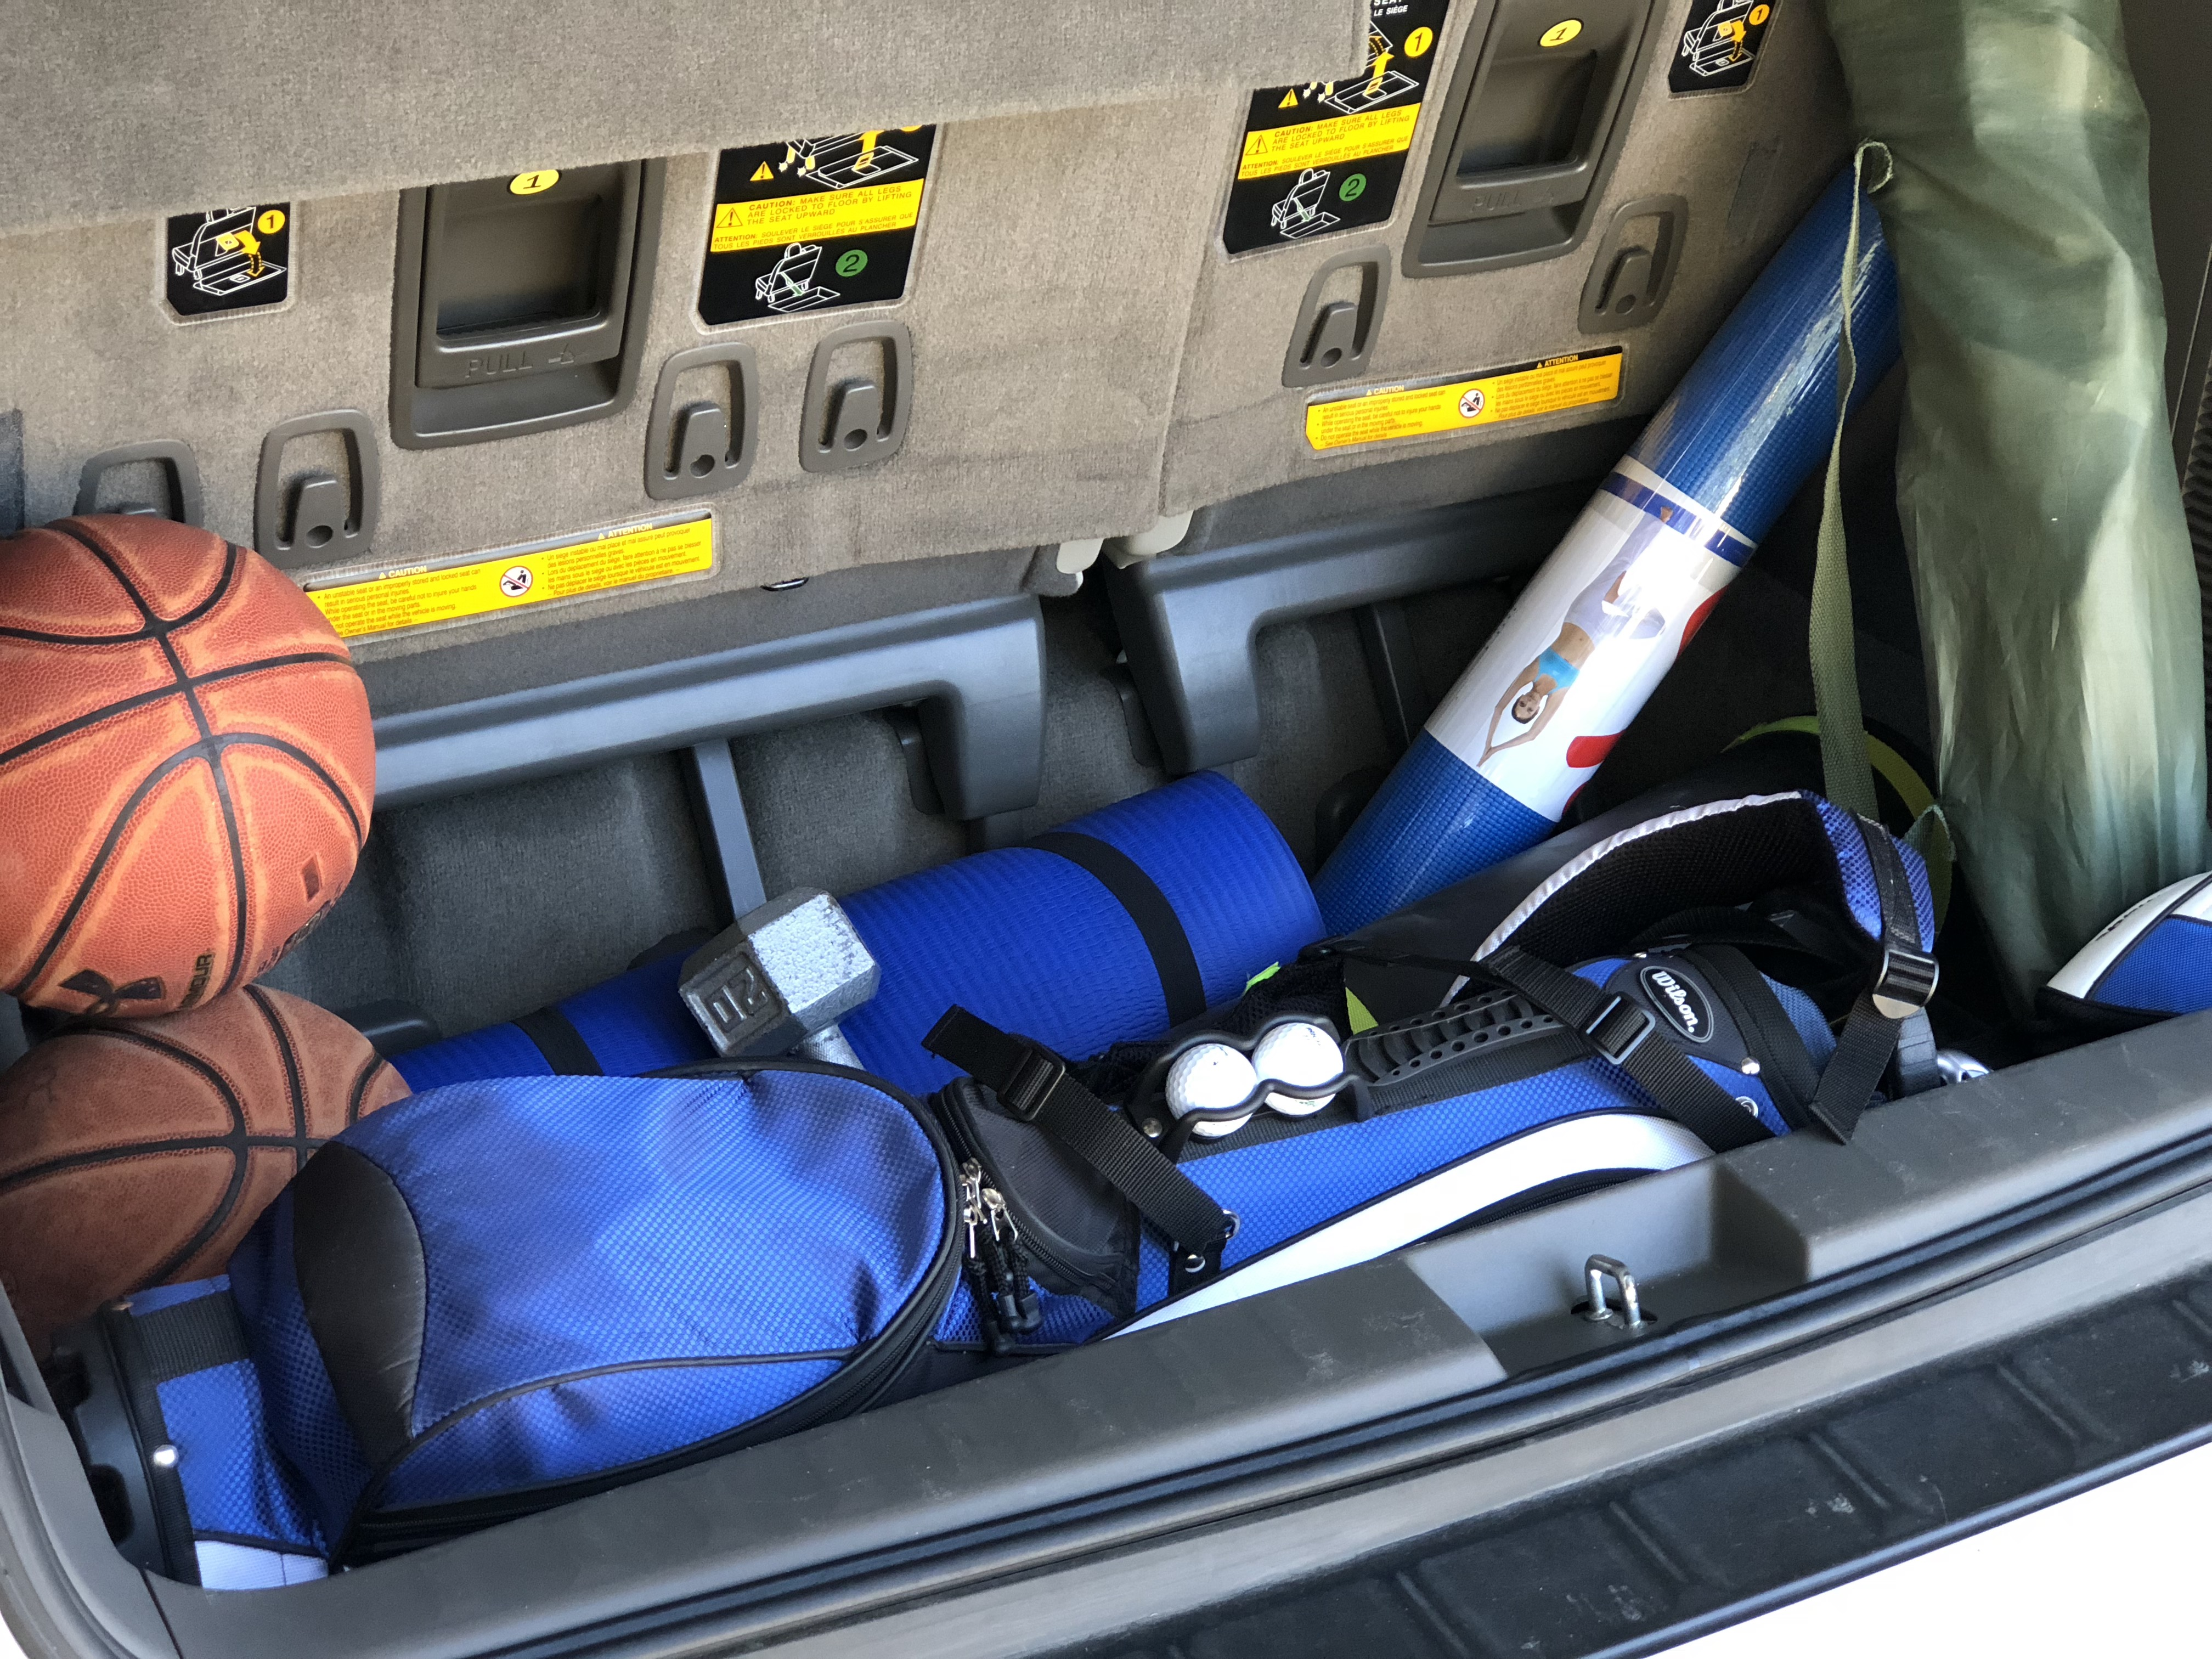 simple tips to save money on gas – trunk filled with sports gear